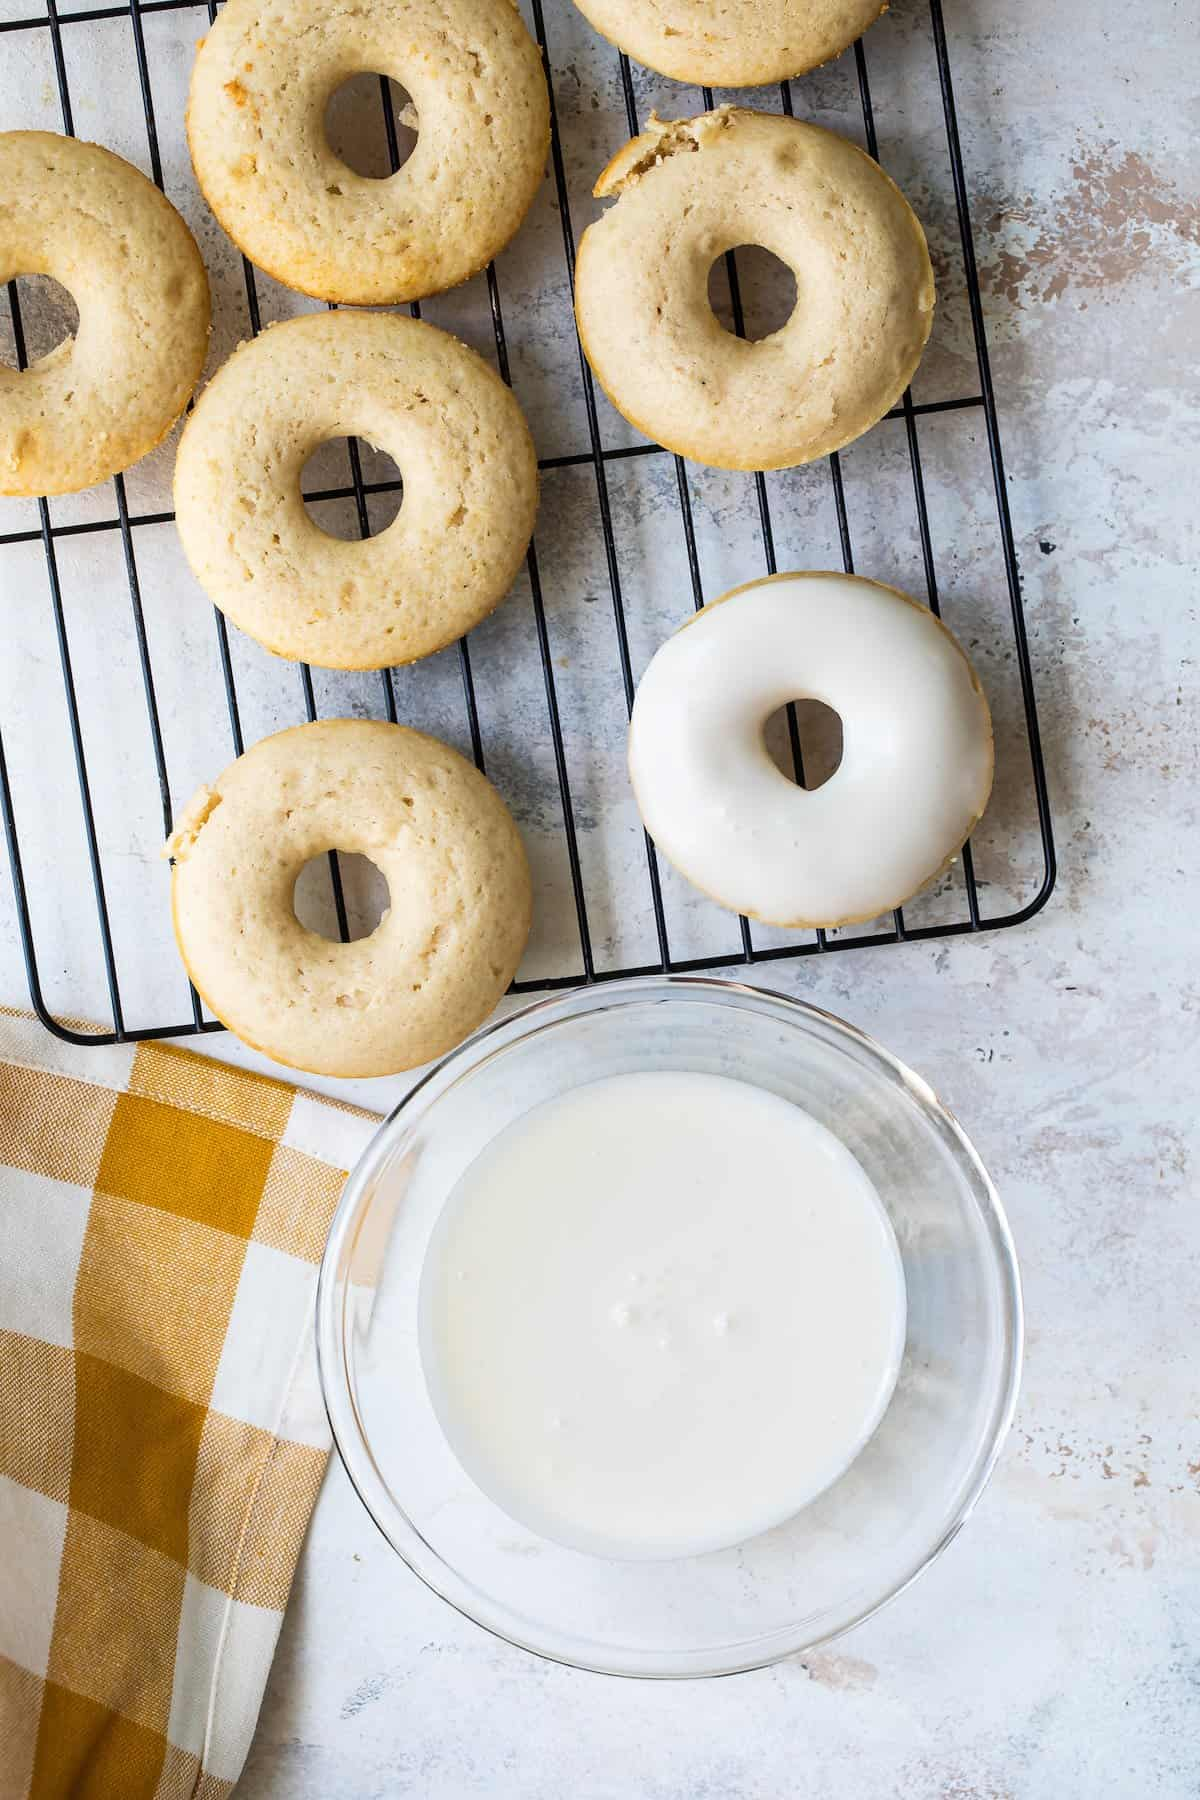 Cooling rack with cinnamon baked donuts.